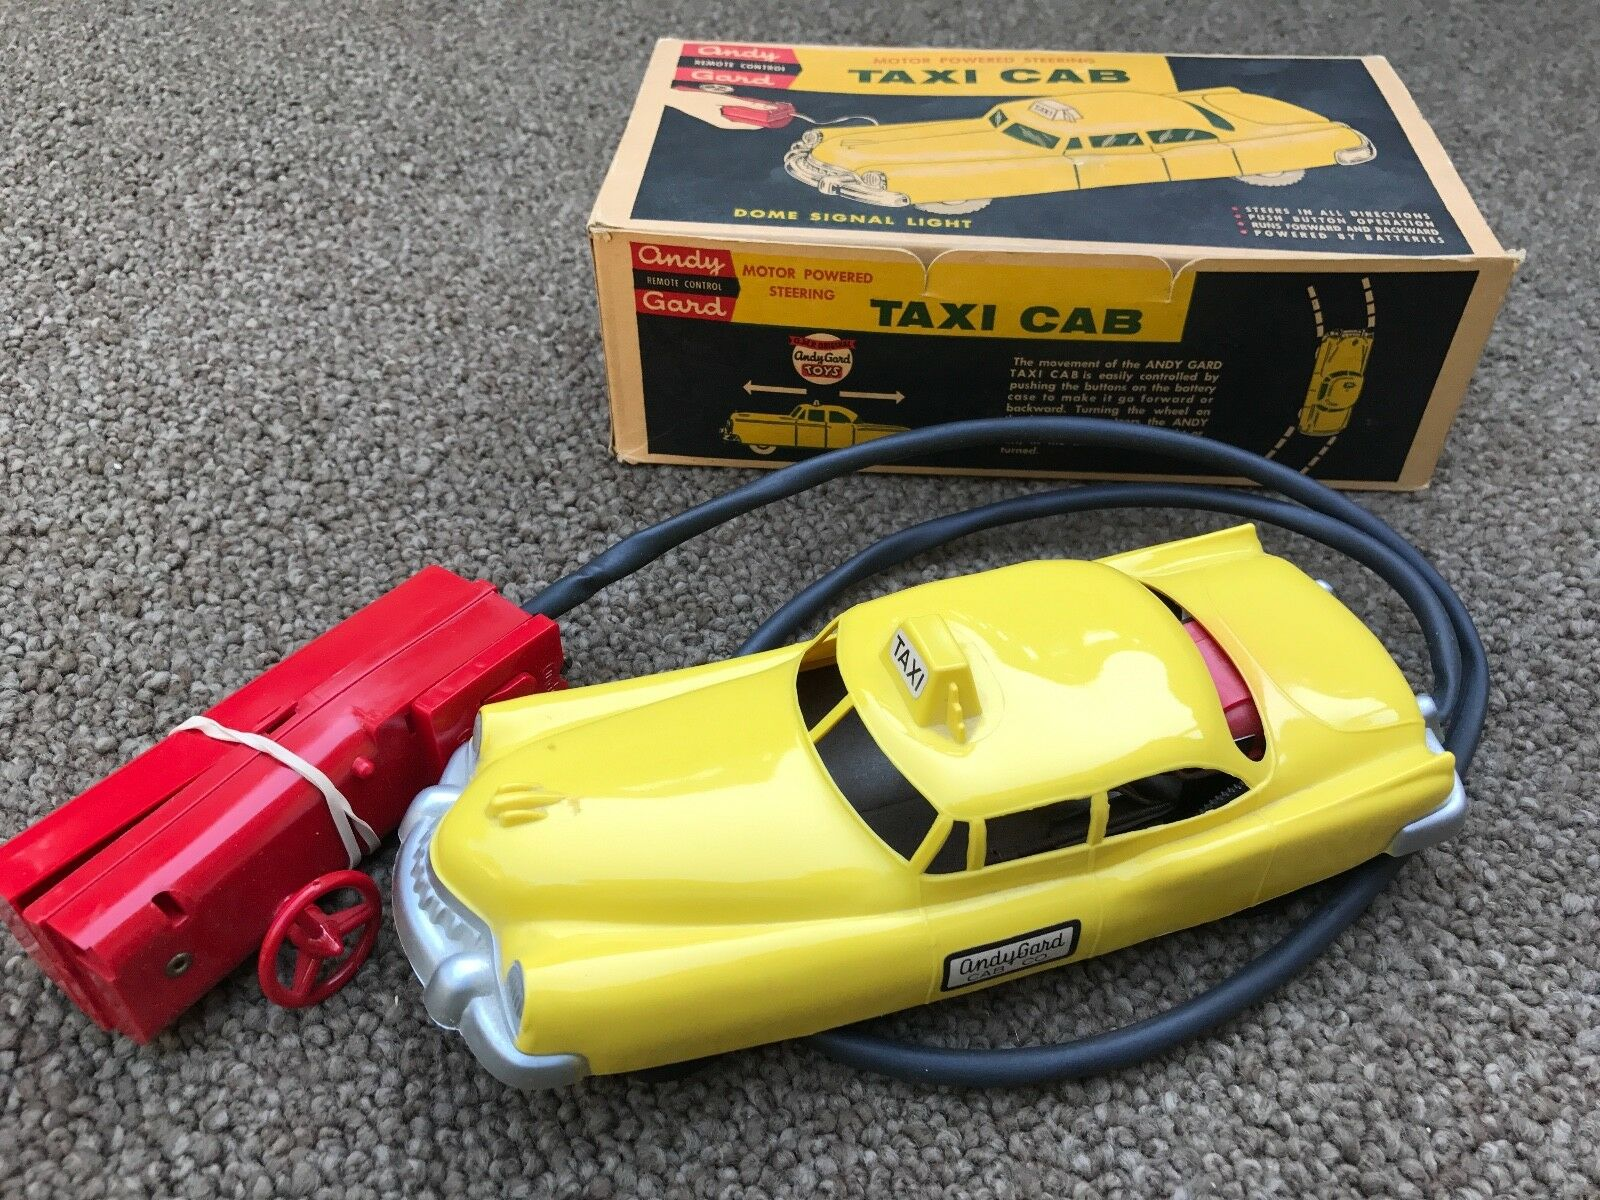 ey Gard REMOTE CONTROL TAXI CAB giocattolo   Batteries Early 1960's Rare Mint-in-scatola